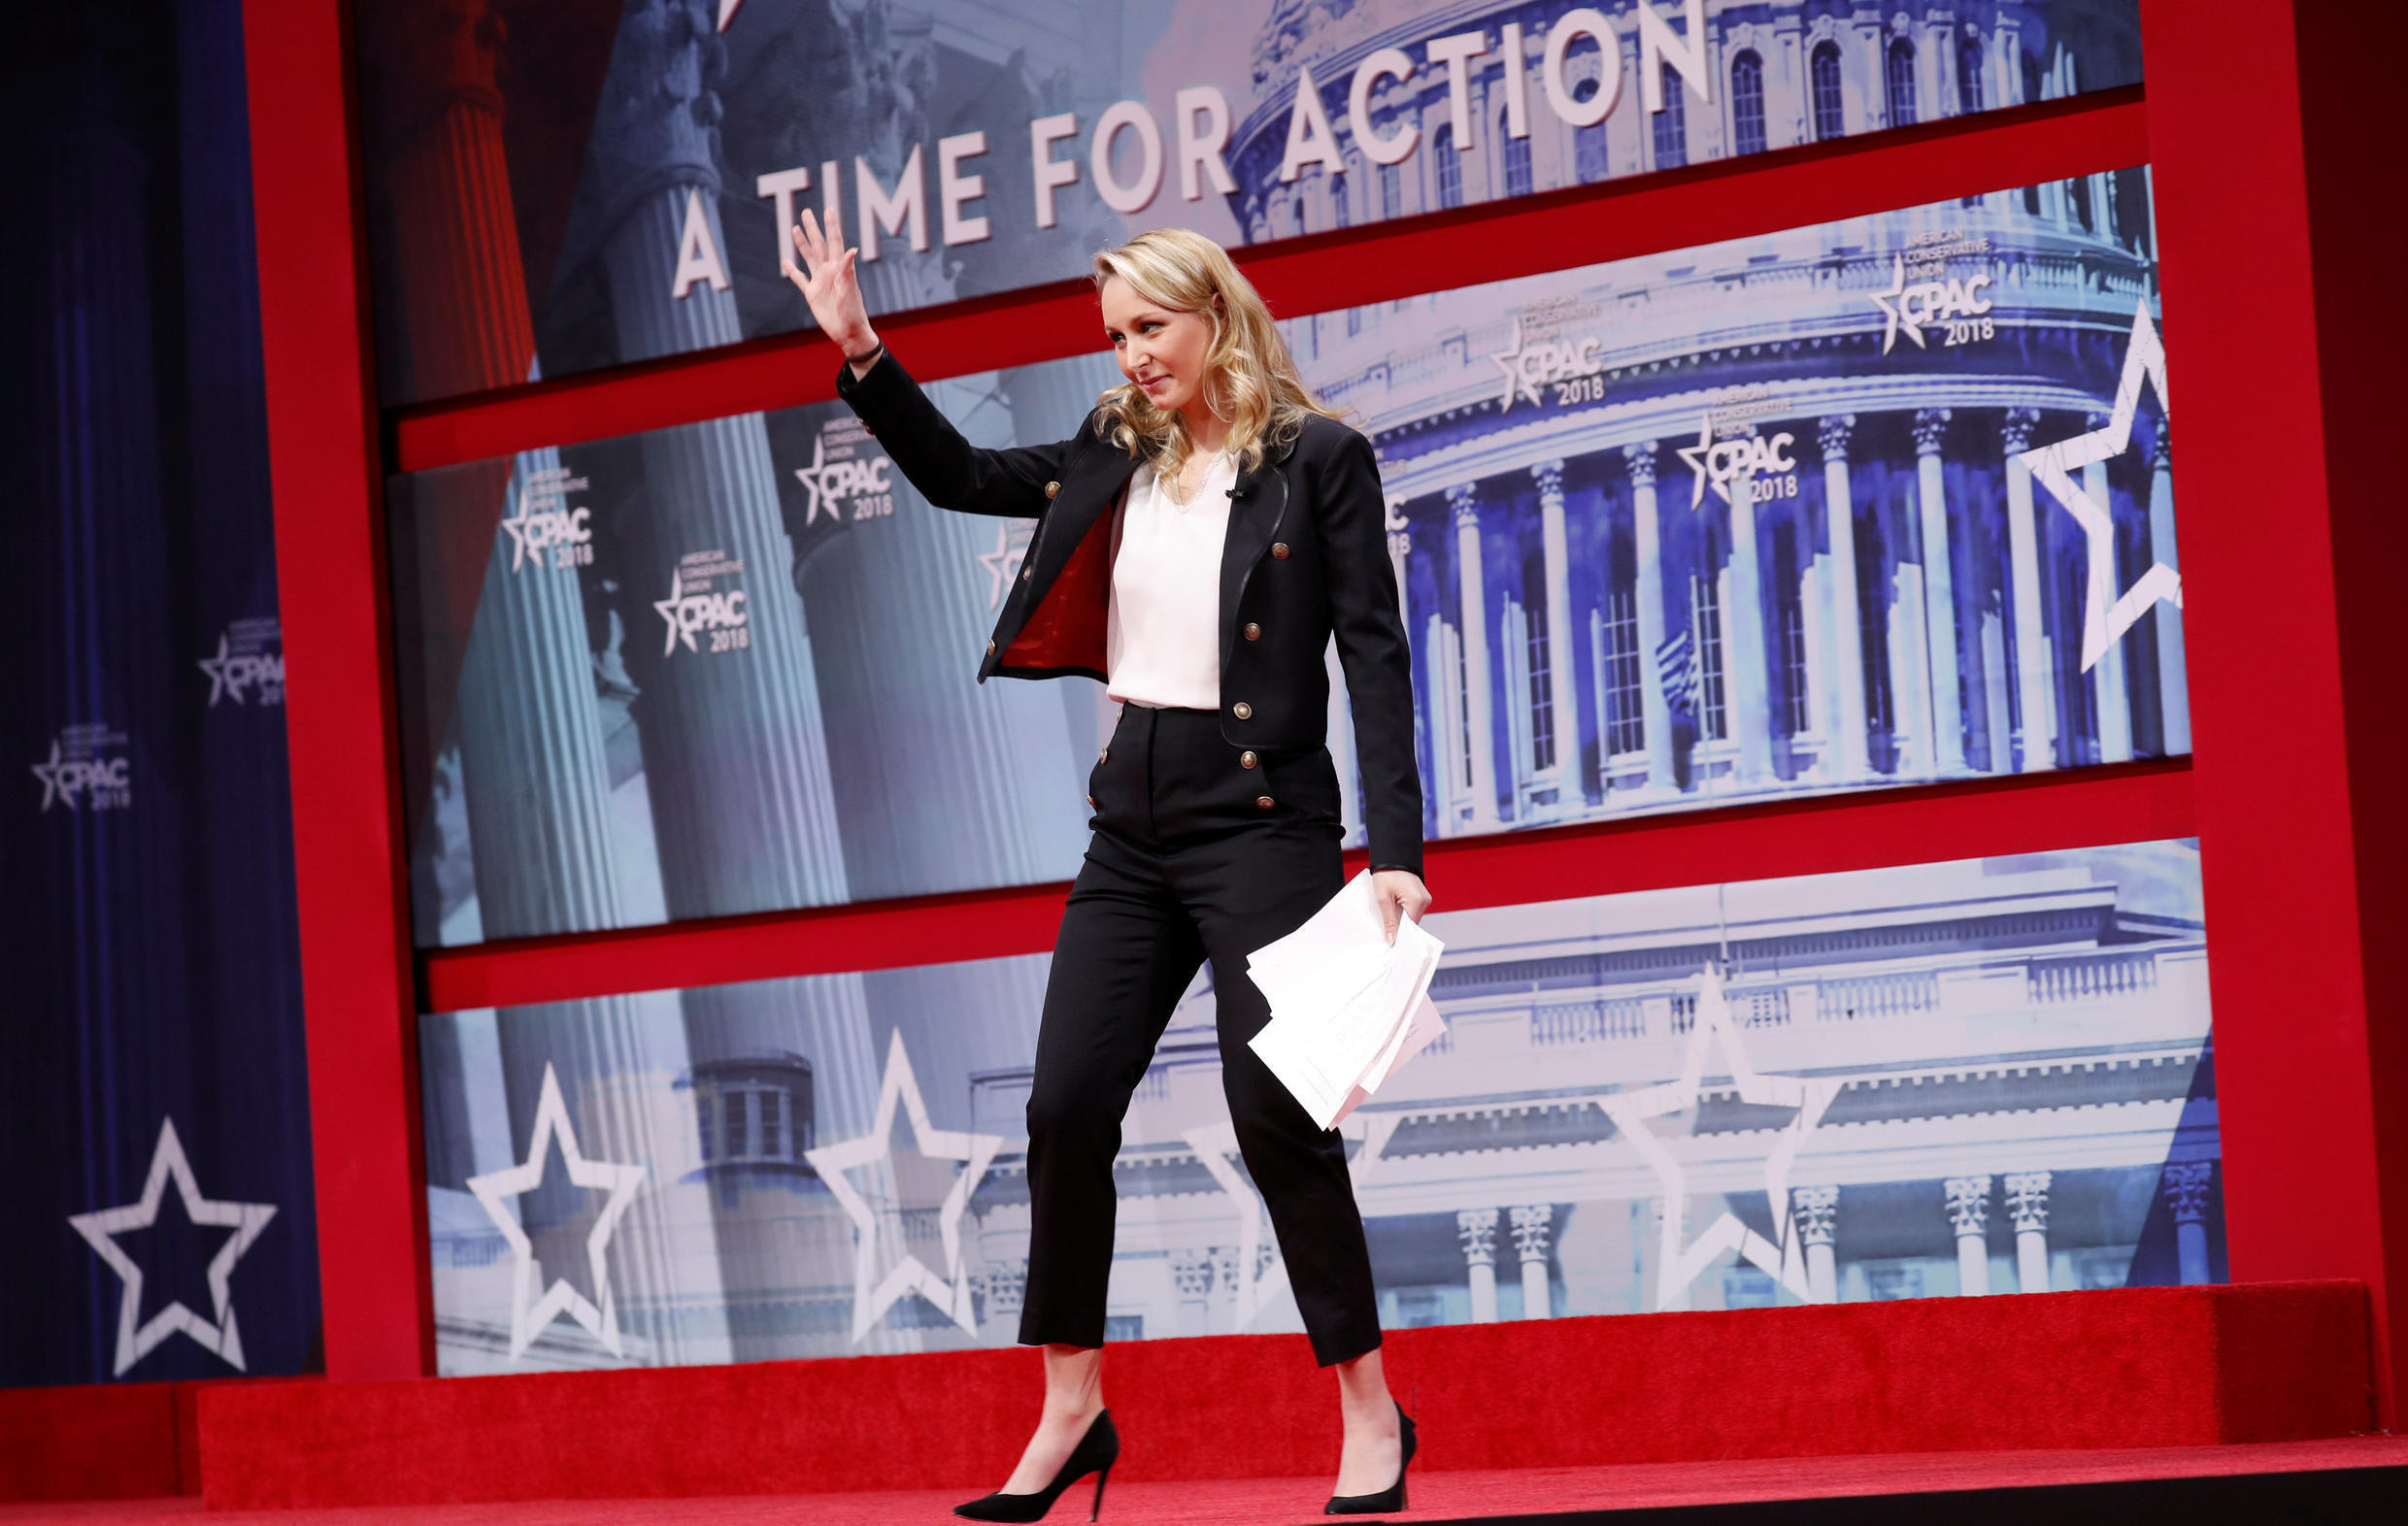 Marion Marechal-Le Pen, niece of right-wing populist French politician Marine Le Pen, waves after speaking at the Conservative Political Action Conference (CPAC) at National Harbor, Maryland, U.S., February 22, 2018.